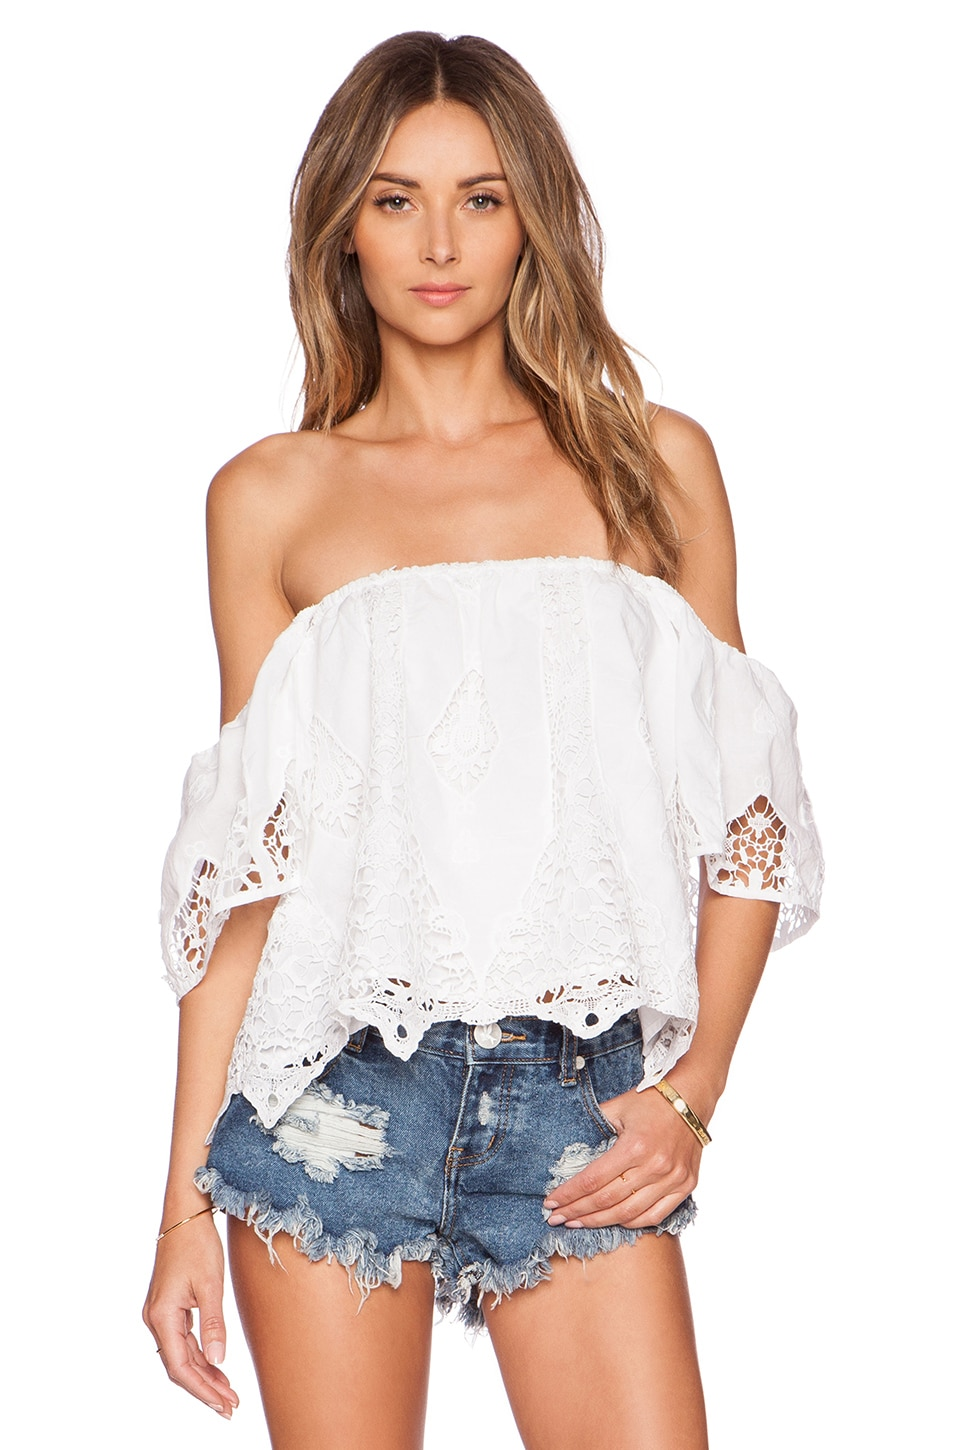 Tularosa Dame Top en White